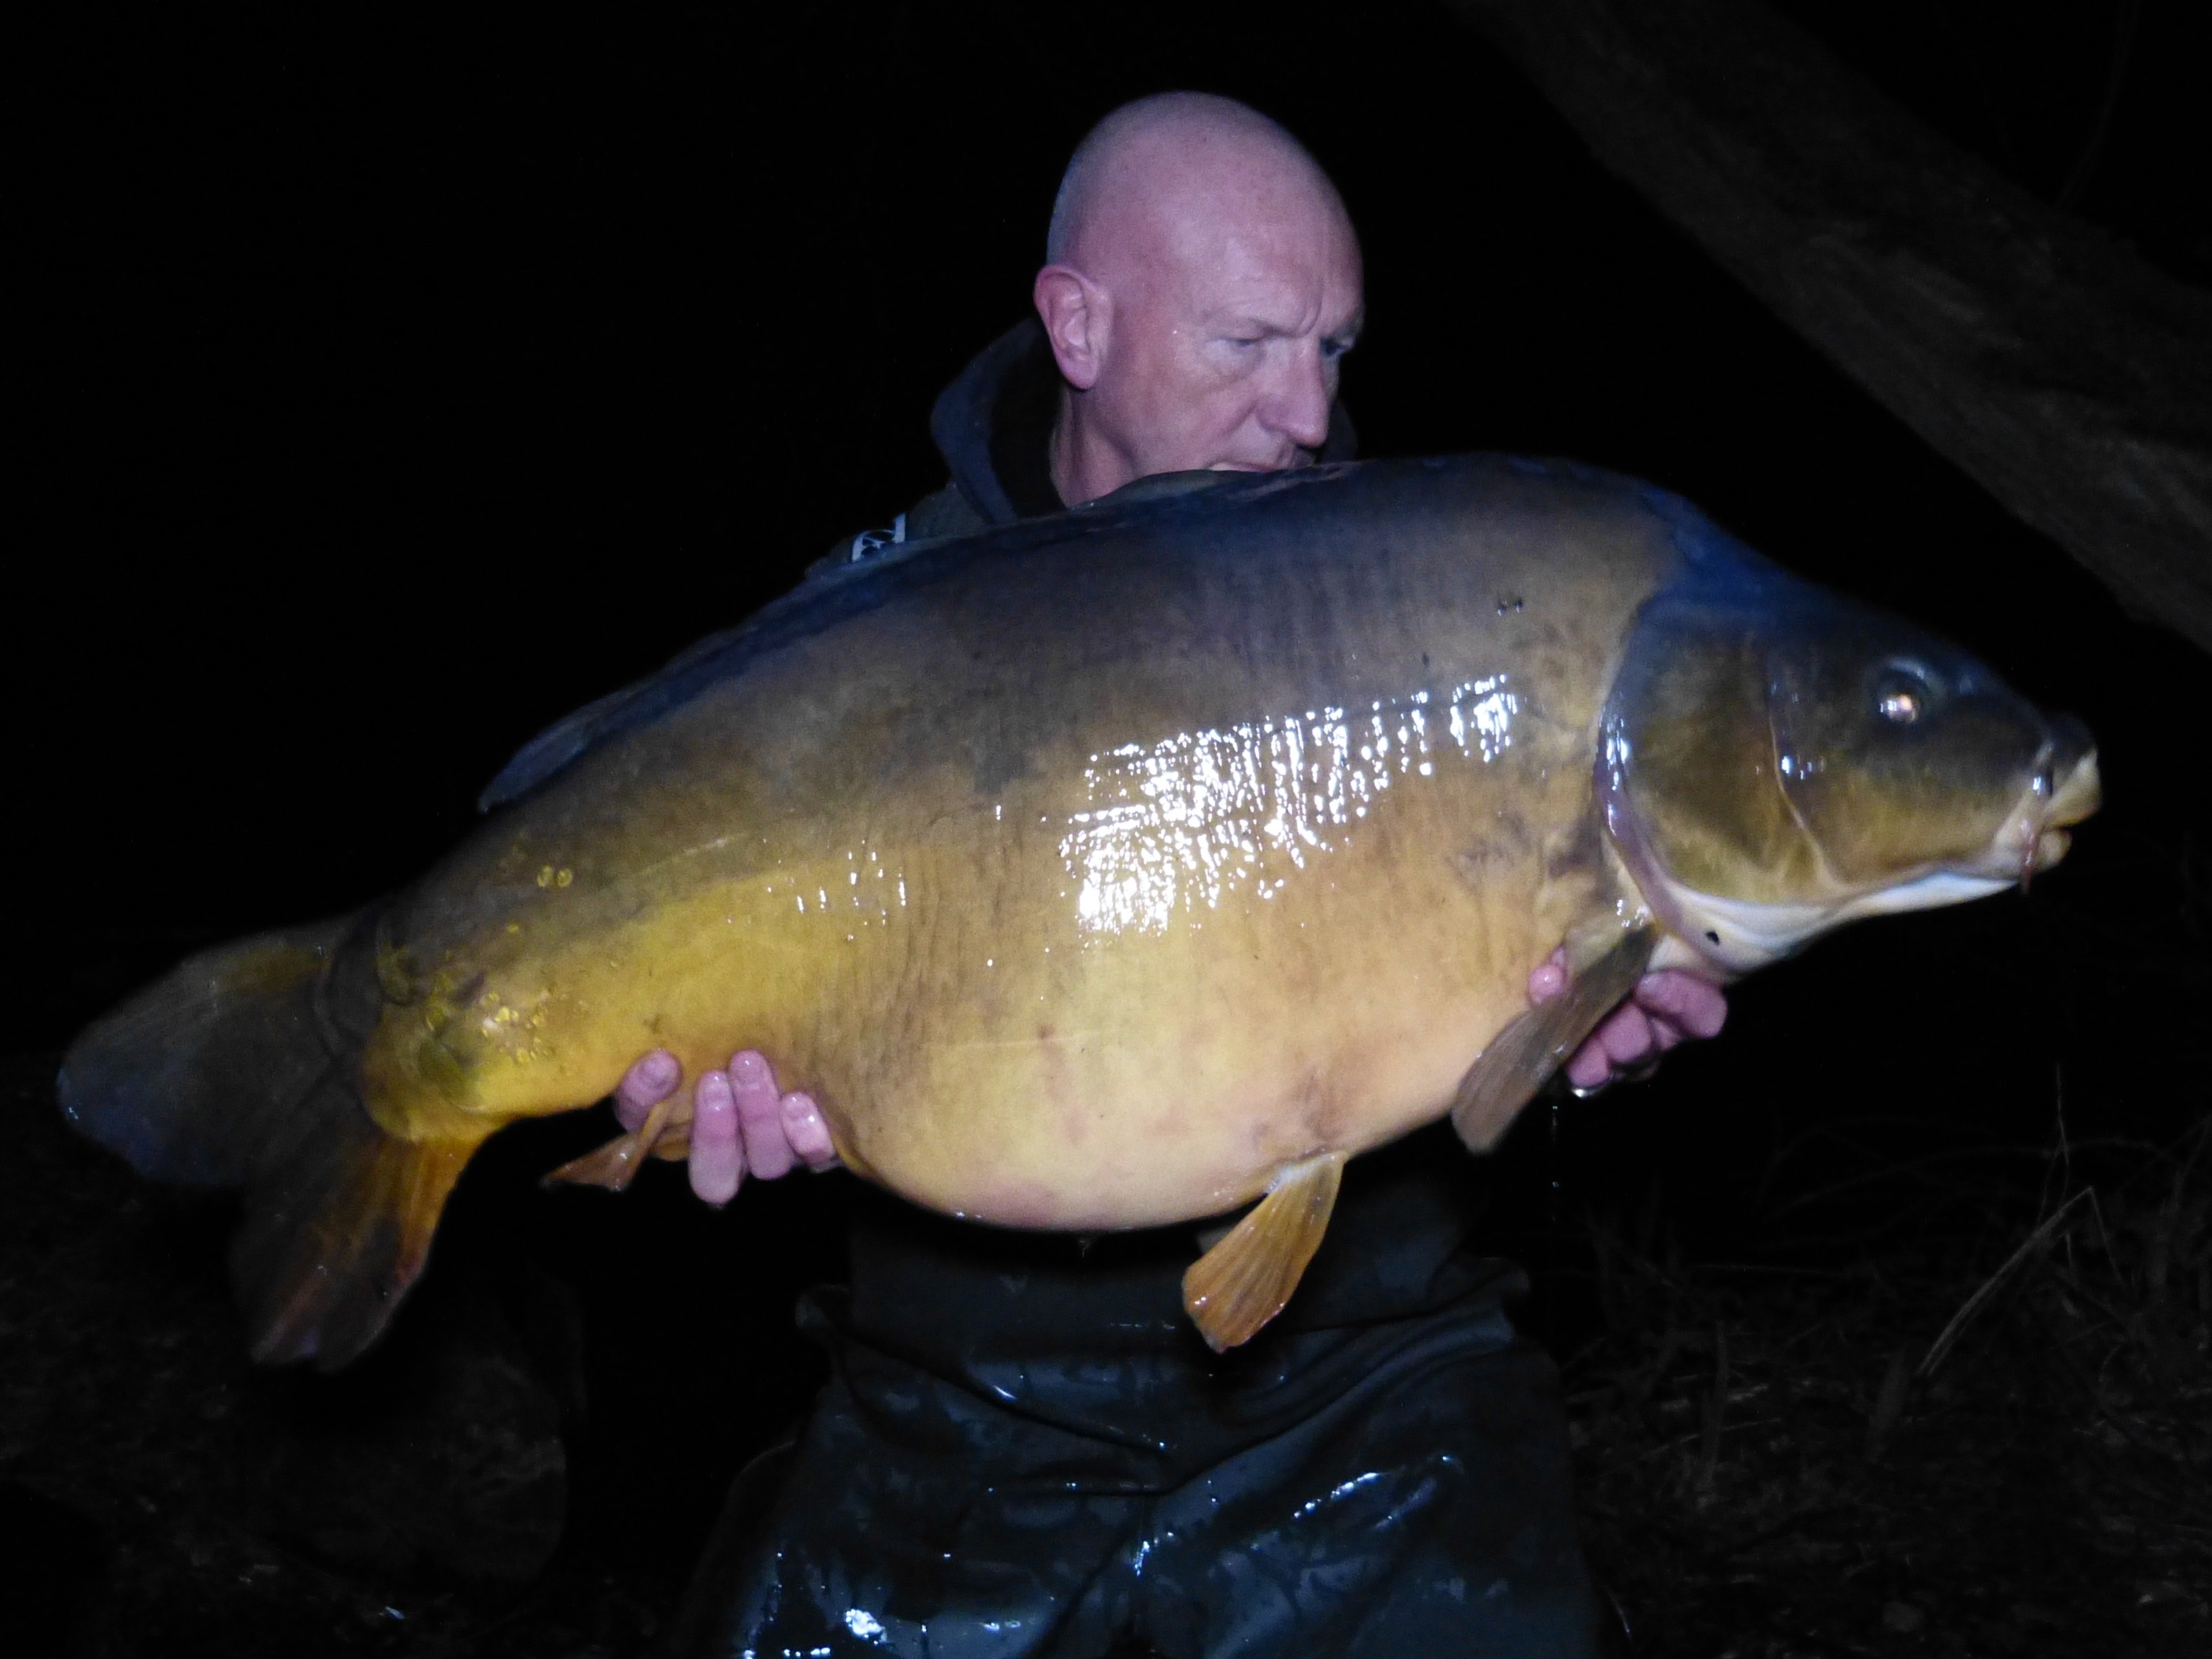 46lb 04oz 'OT' caught on